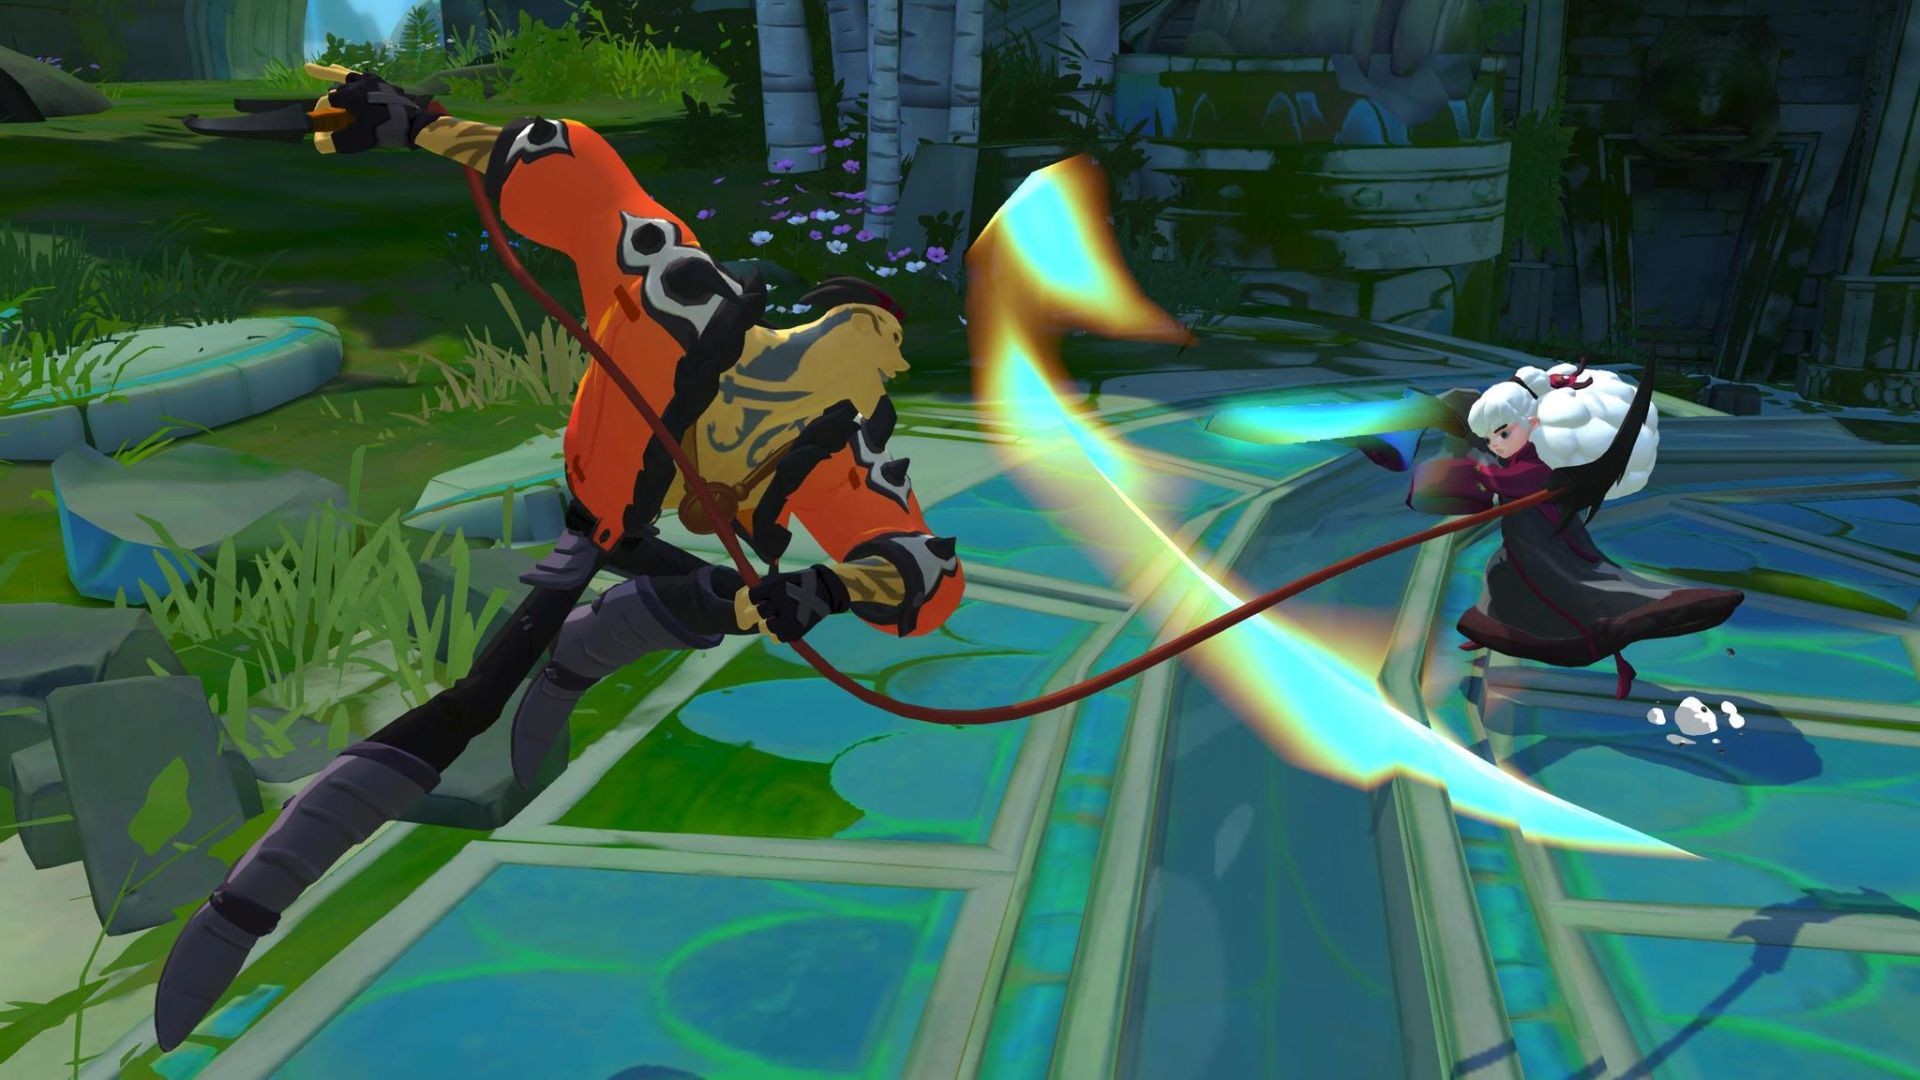 Gigantic: Release – Steam-Launch heute! Neuer Punk-Held Ramsay kommt